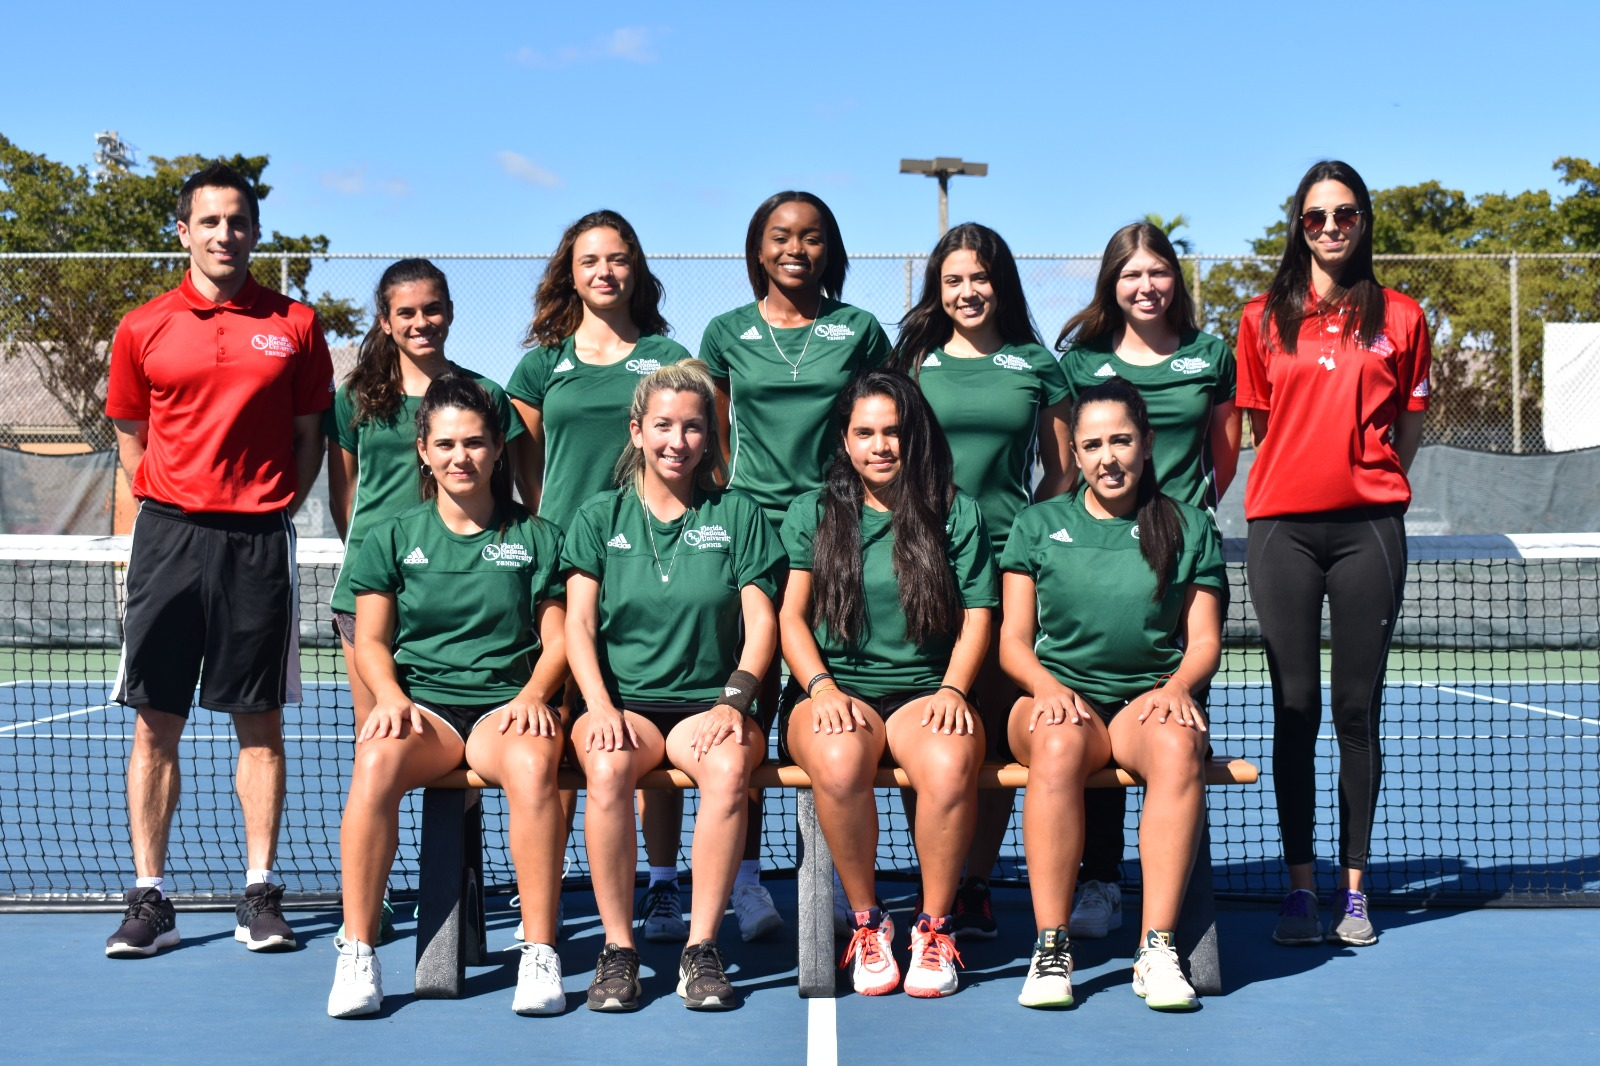 Women's Tennis Team Picture